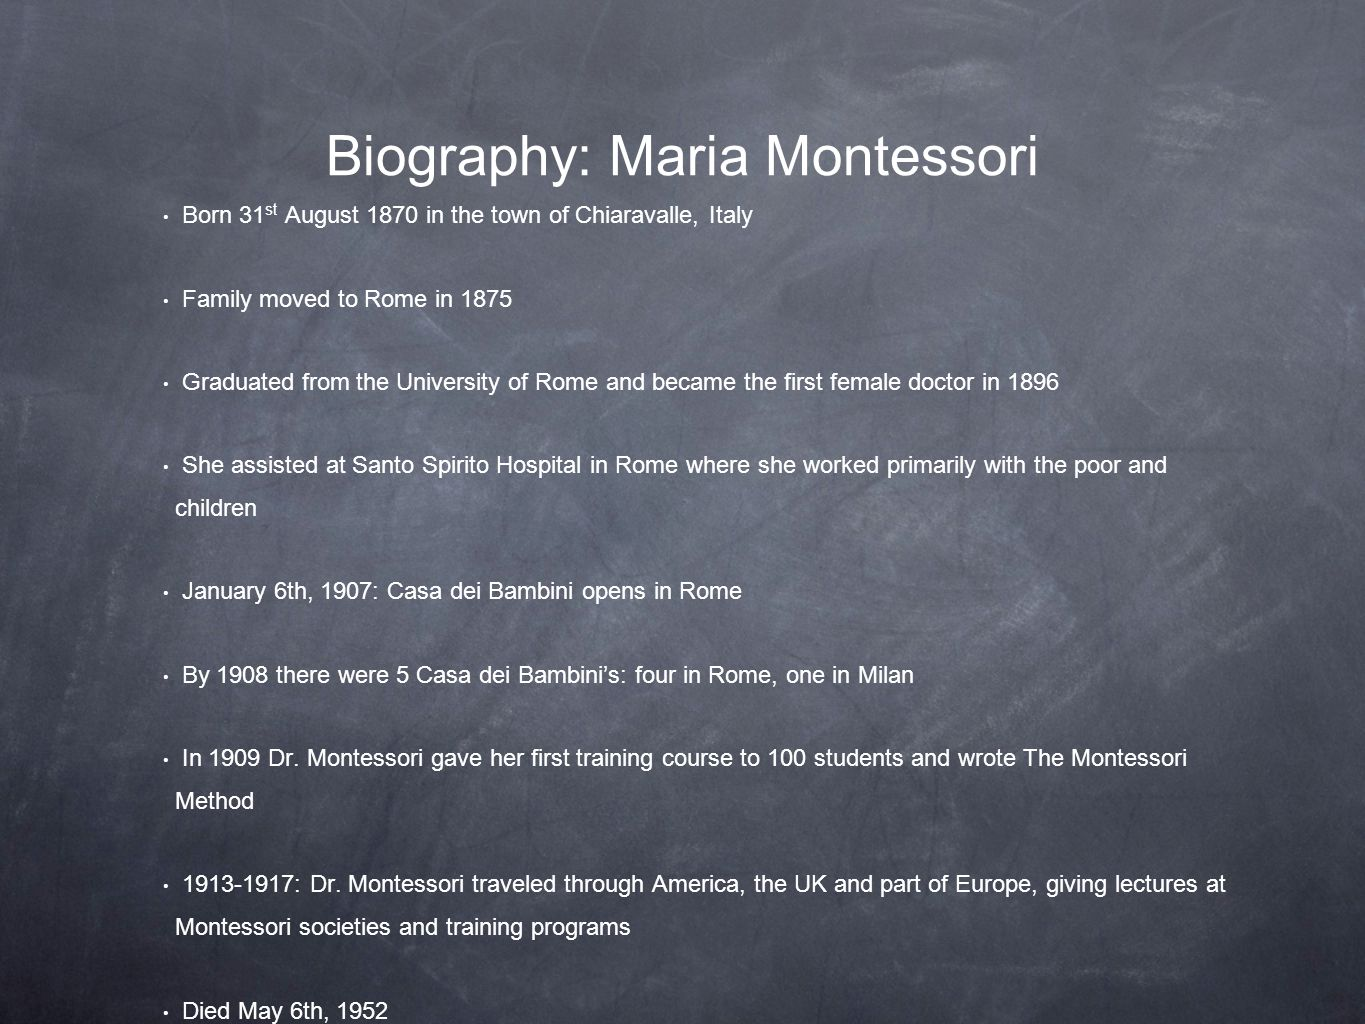 Biography: Maria Montessori Born 31 st August 1870 in the town of Chiaravalle, Italy Family moved to Rome in 1875 Graduated from the University of Rome and became the first female doctor in 1896 She assisted at Santo Spirito Hospital in Rome where she worked primarily with the poor and children January 6th, 1907: Casa dei Bambini opens in Rome By 1908 there were 5 Casa dei Bambini's: four in Rome, one in Milan In 1909 Dr.